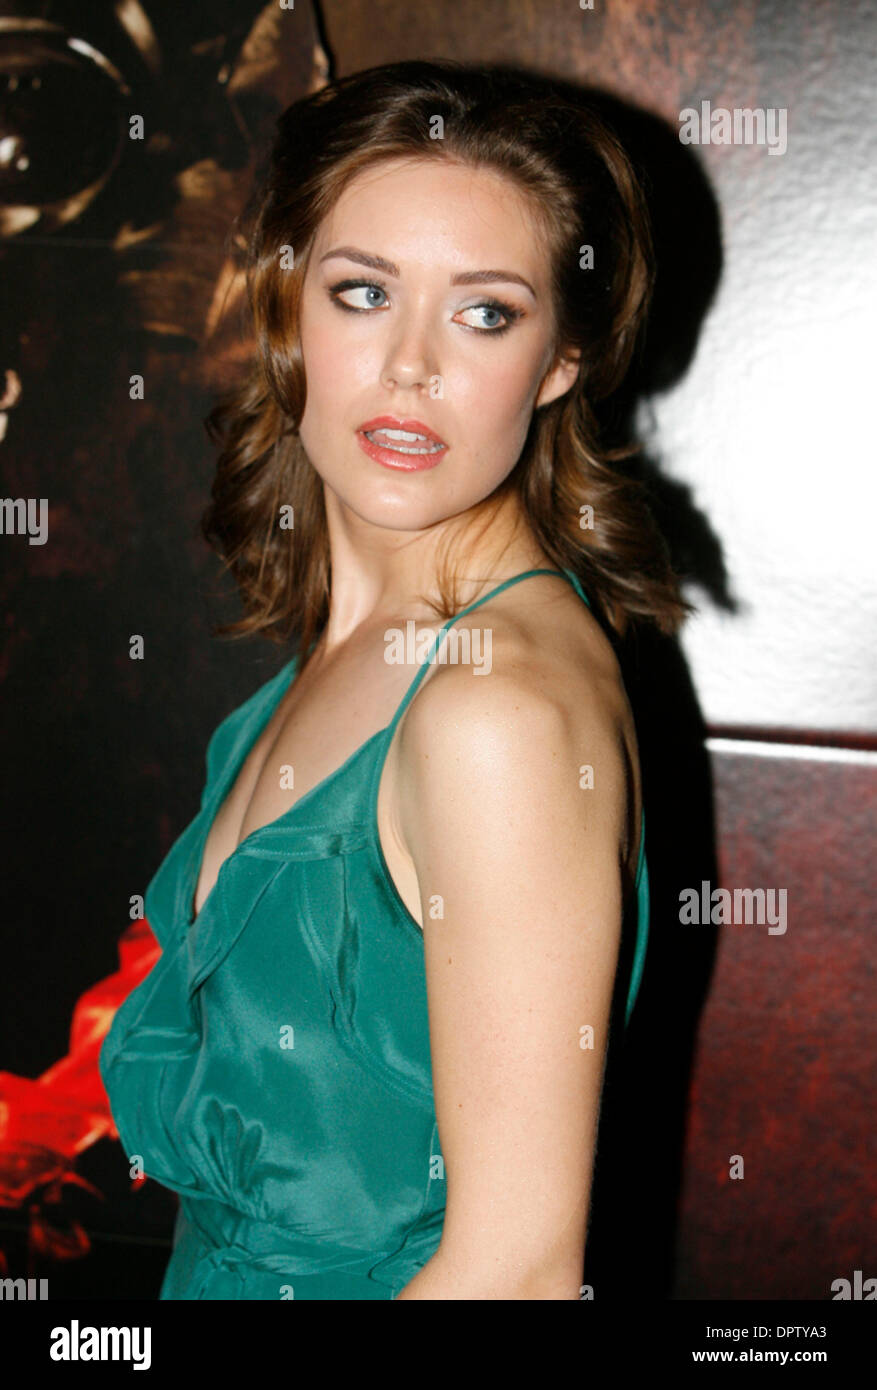 Megan Boone naked (76 fotos), hacked Pussy, Instagram, braless 2016